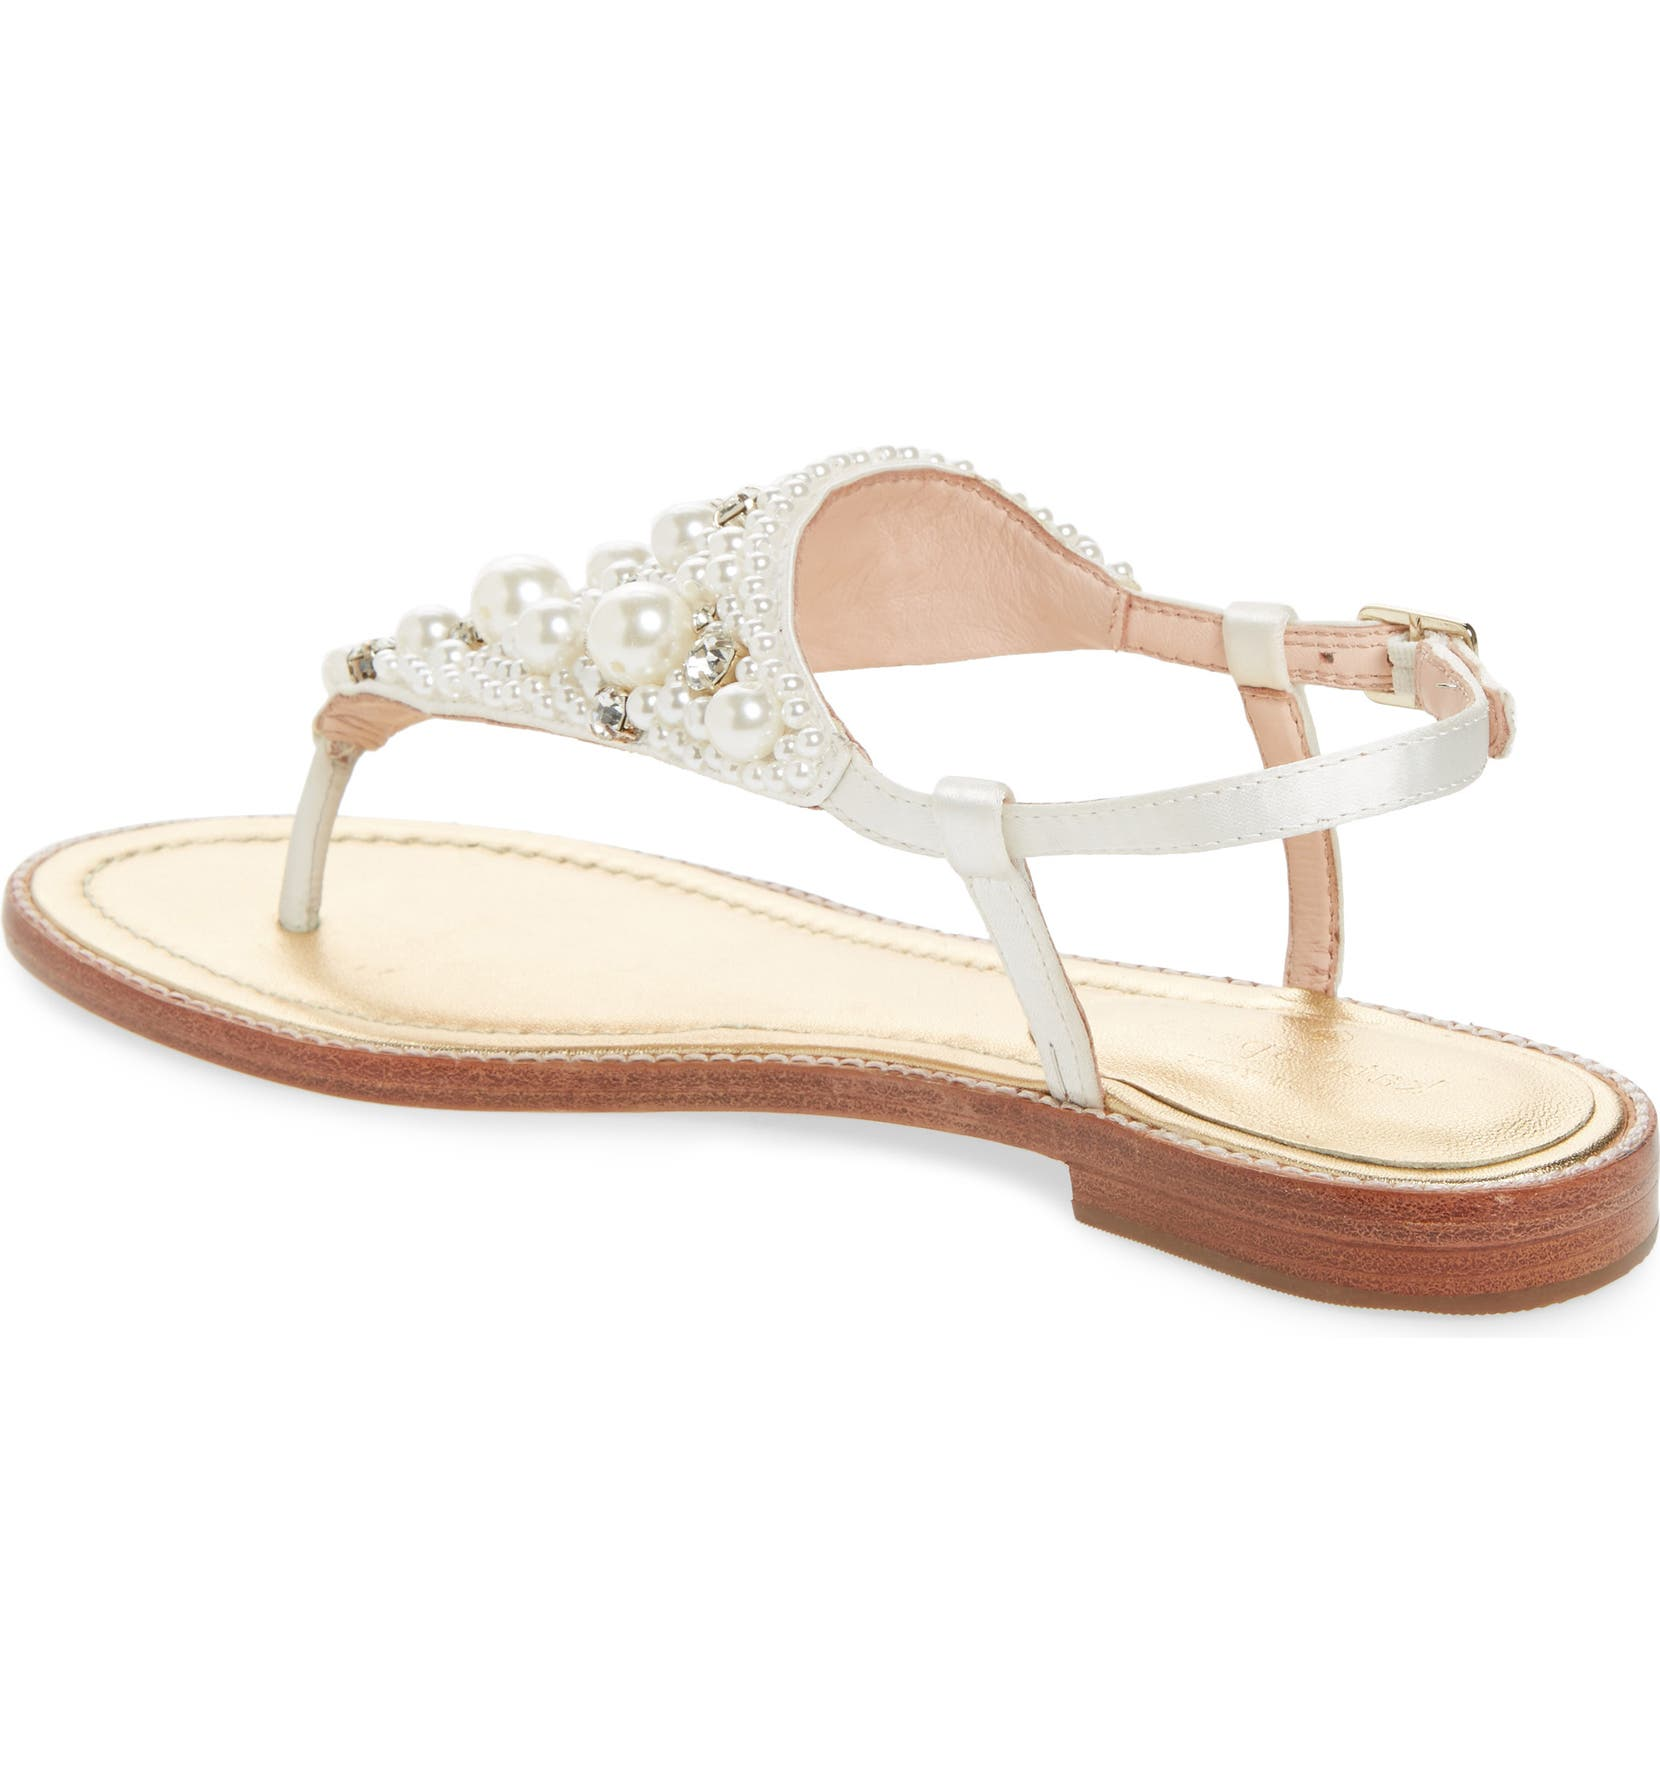 69e618f5e0d kate spade new york sama embellished thong sandal (Women)